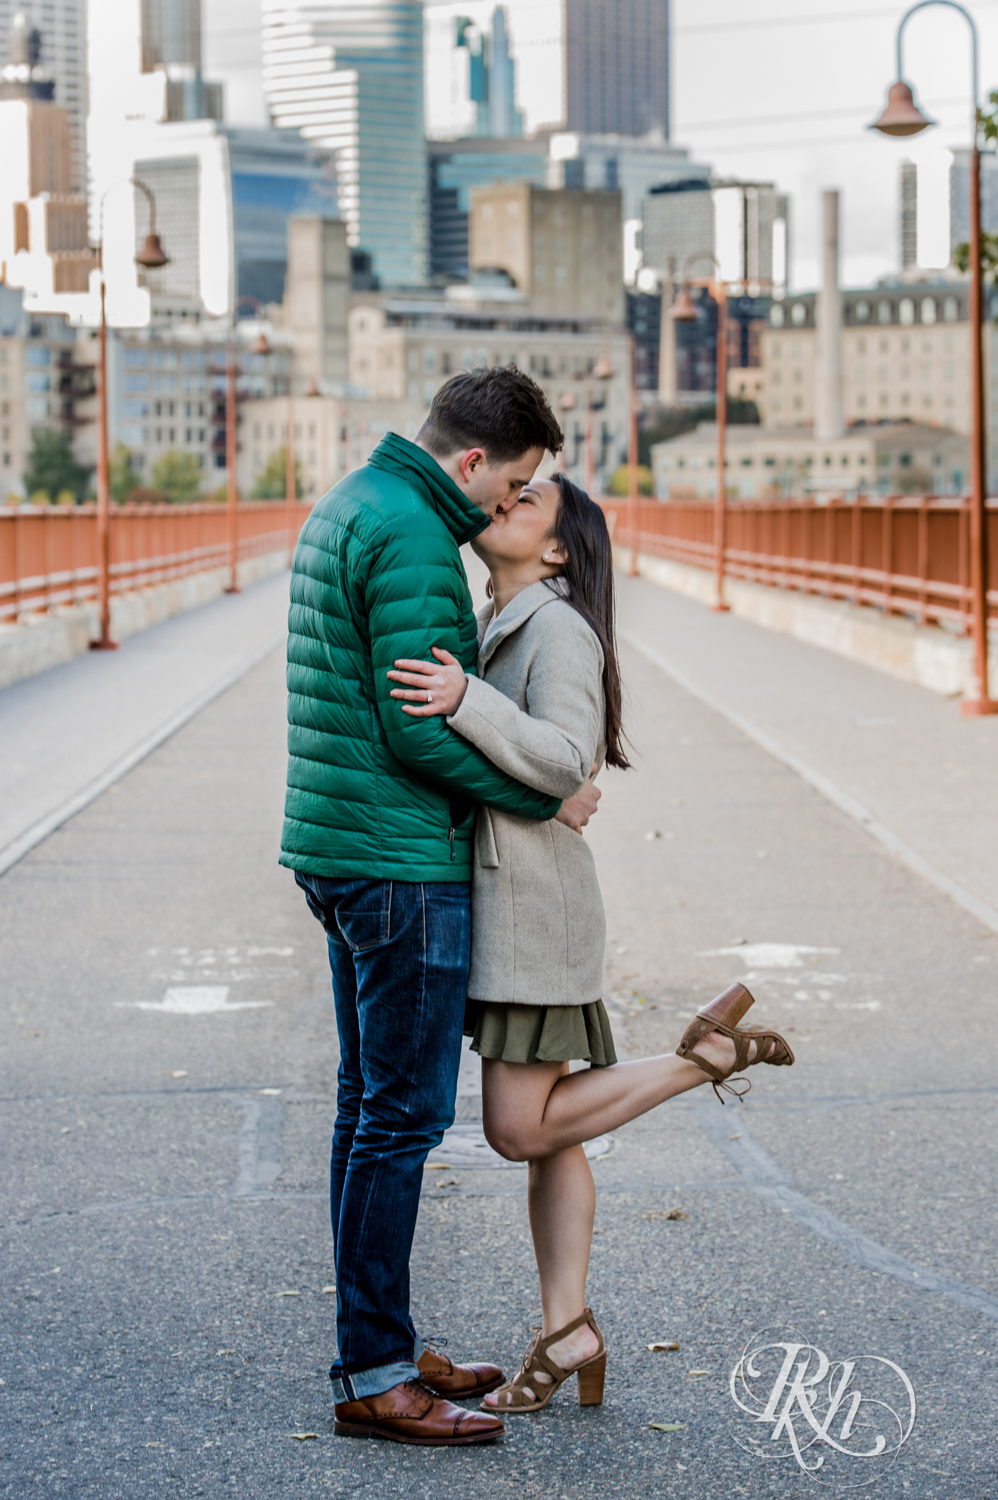 Courtney and Nick - Minnesota Engagement Photography - Stone Arch Bride - RKH Images (7 of 14).jpg